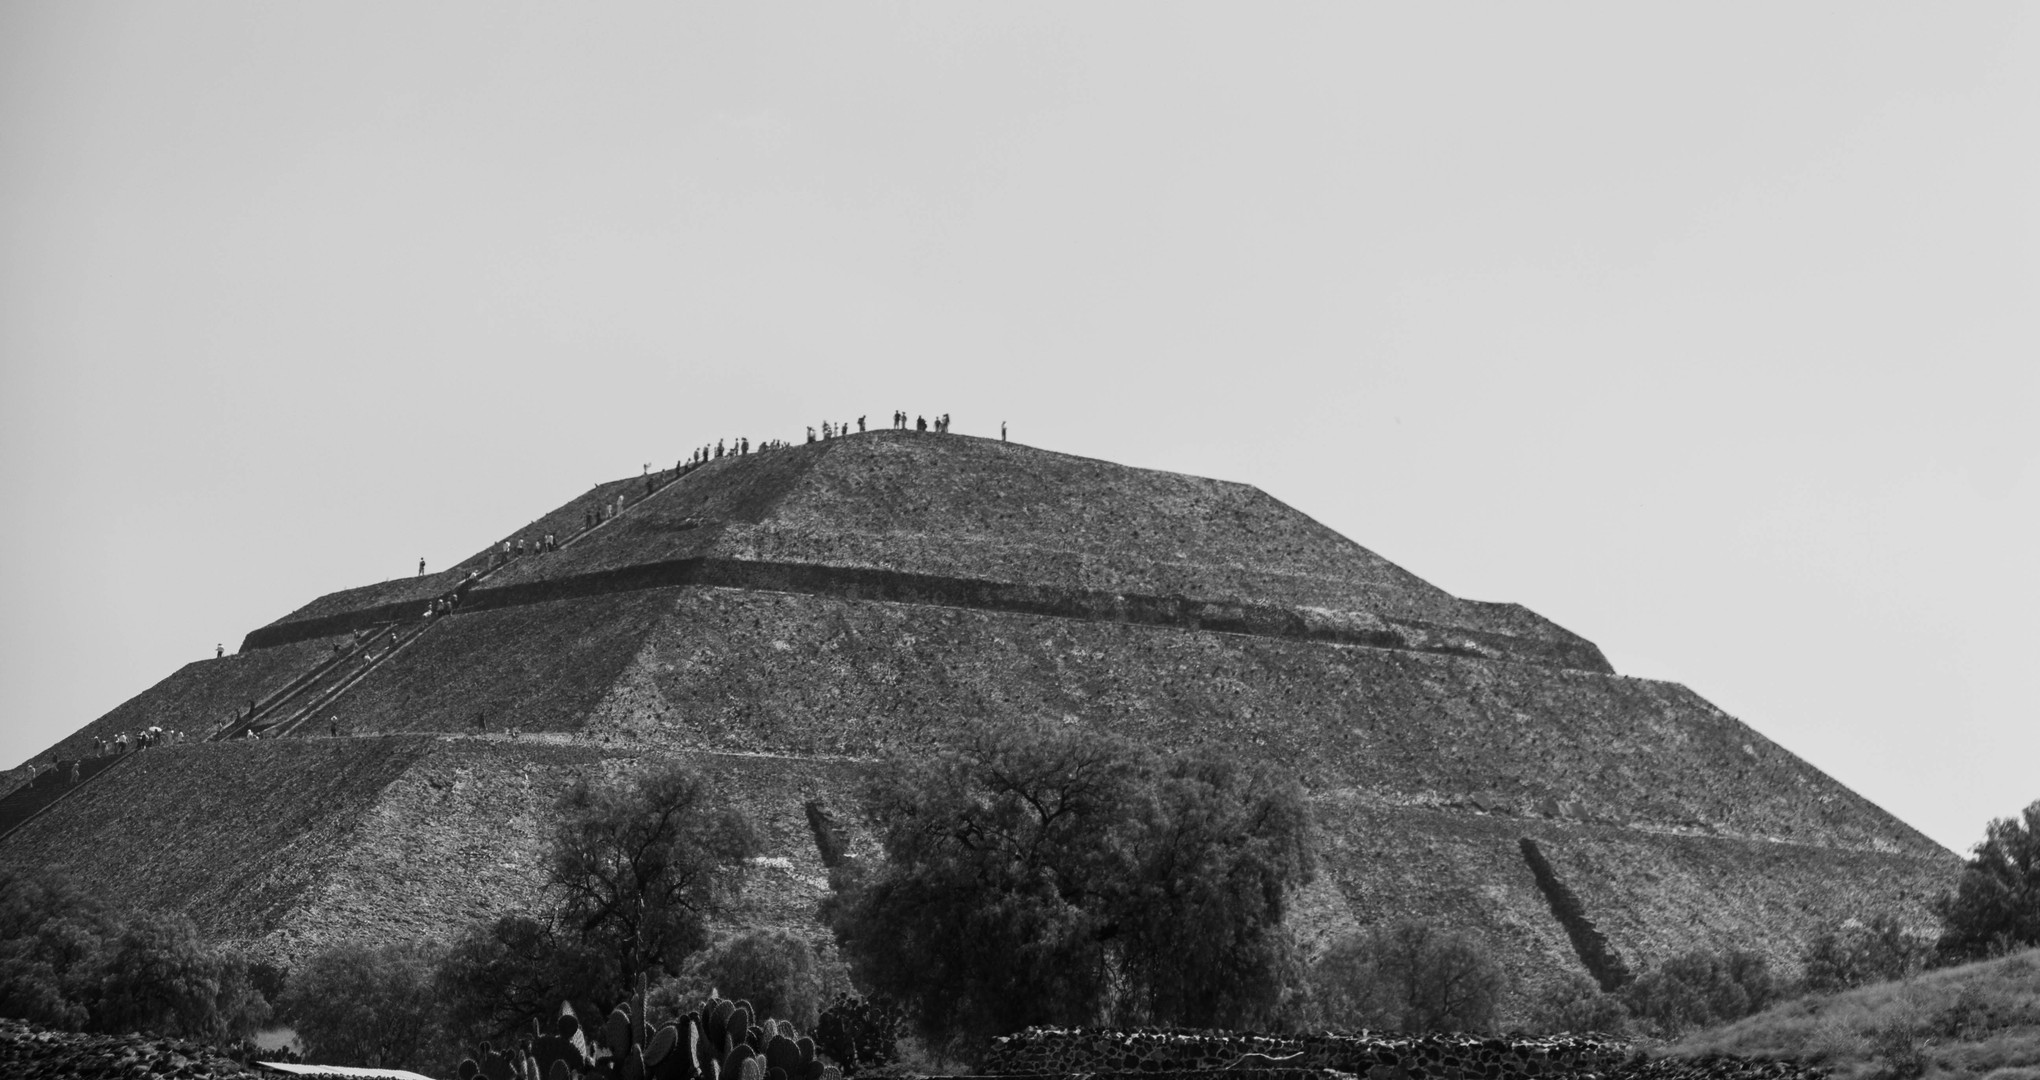 Pyramid of the Moon, Teotihuacan, Mexico, April 2015